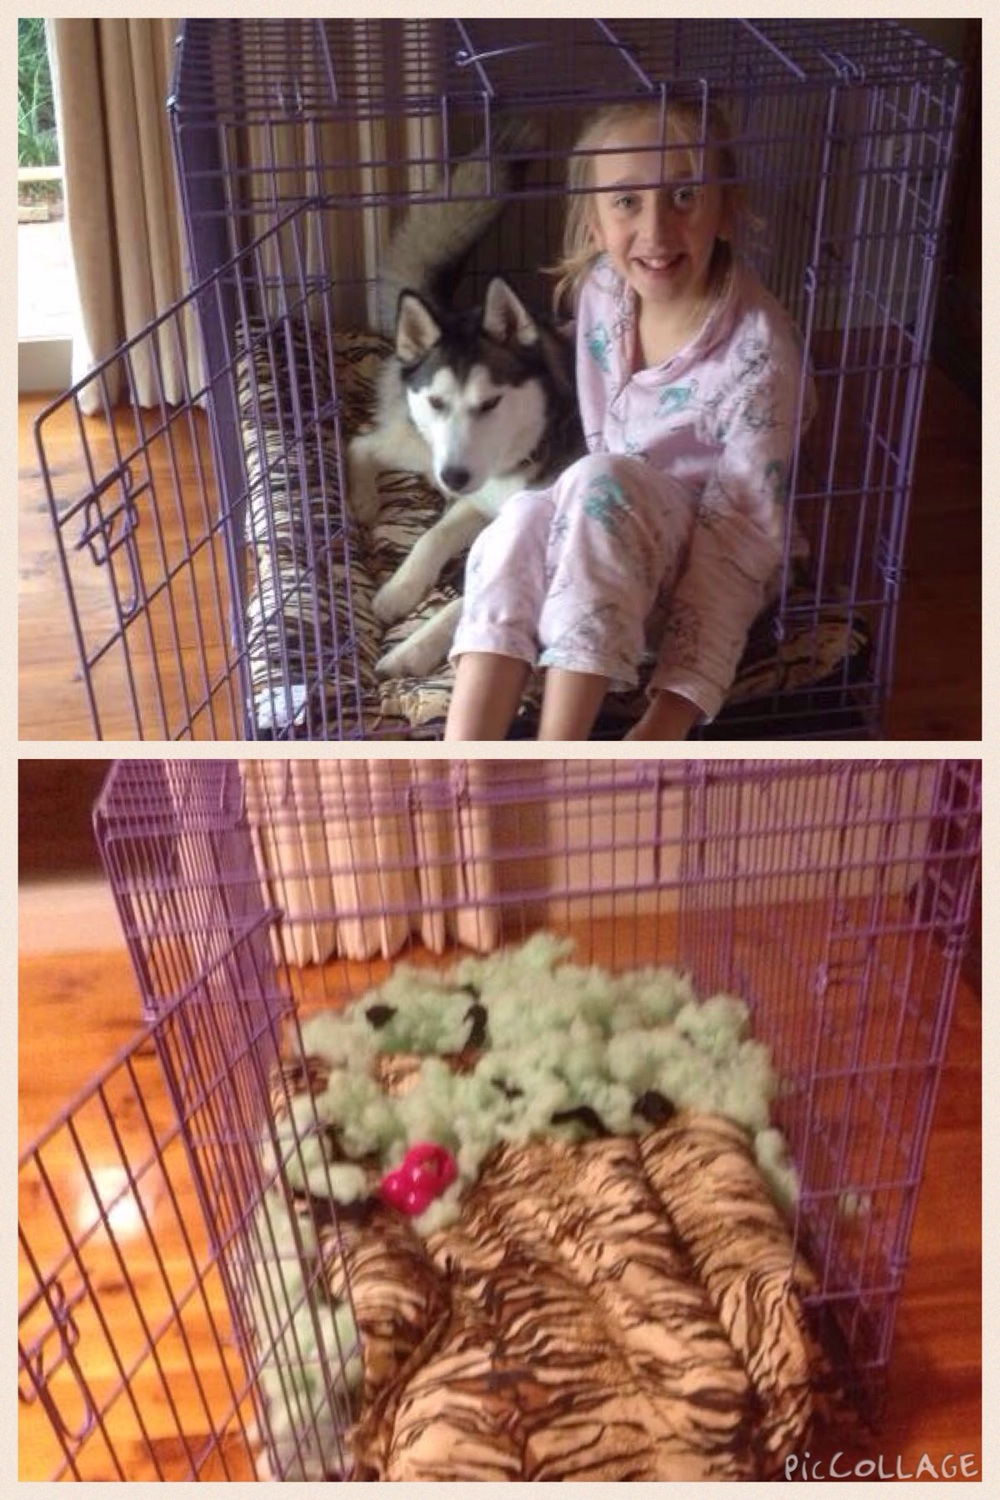 Hanging out with her new sister in her new crate... And the same crate an hour later - Mia!!!